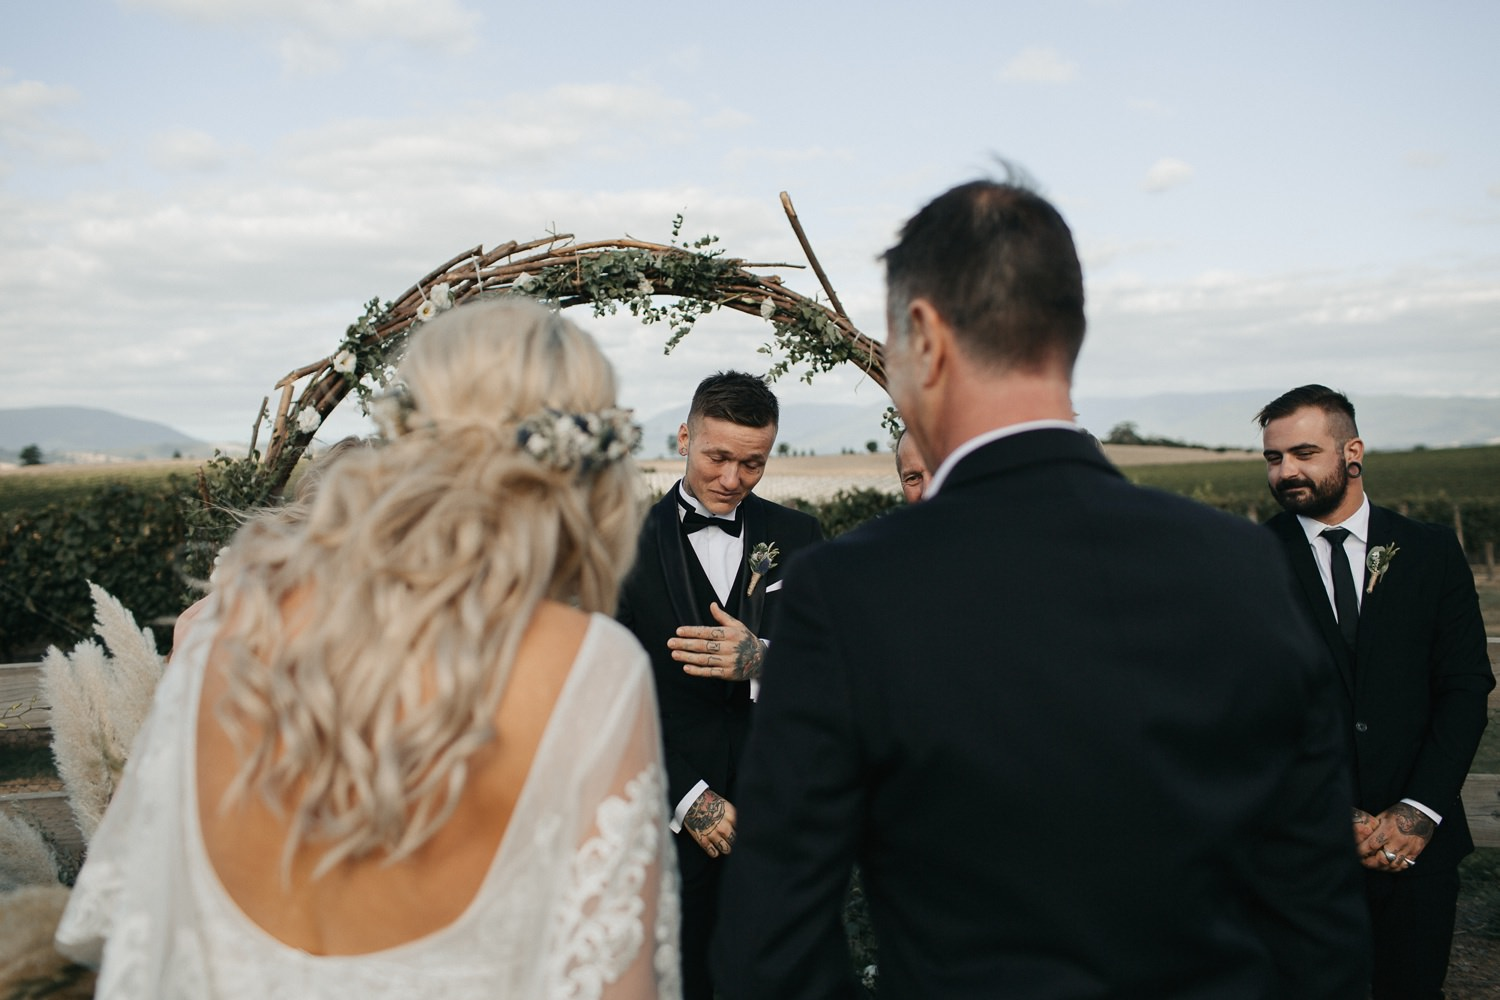 zonzo-estate-yarra-valley-wedding-photographer_0056.jpg